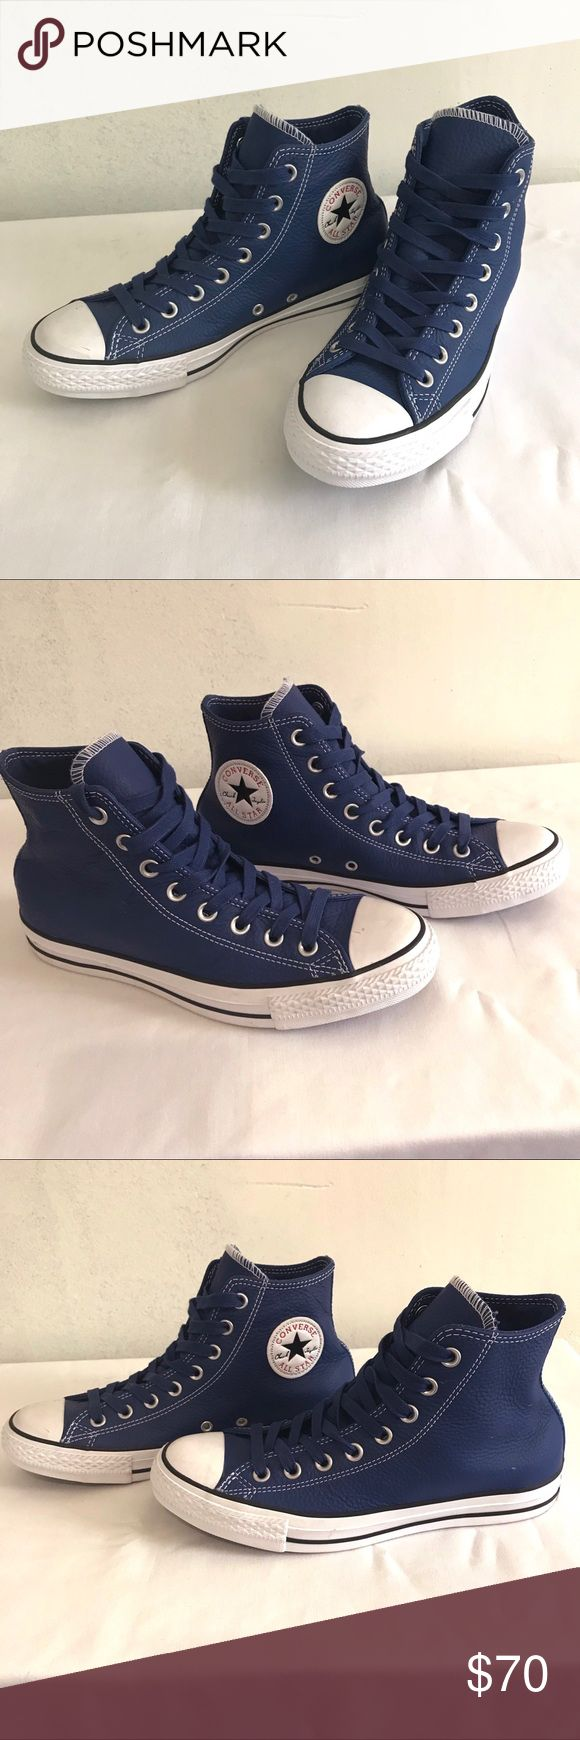 Converse Chuck Taylor • NWOT Leather Sneakers Blue leather high top sneakers by Converse Chuck Taylors. New without tags. Unisex. Women's size 9. Men's size 7. Converse Shoes Athletic Shoes